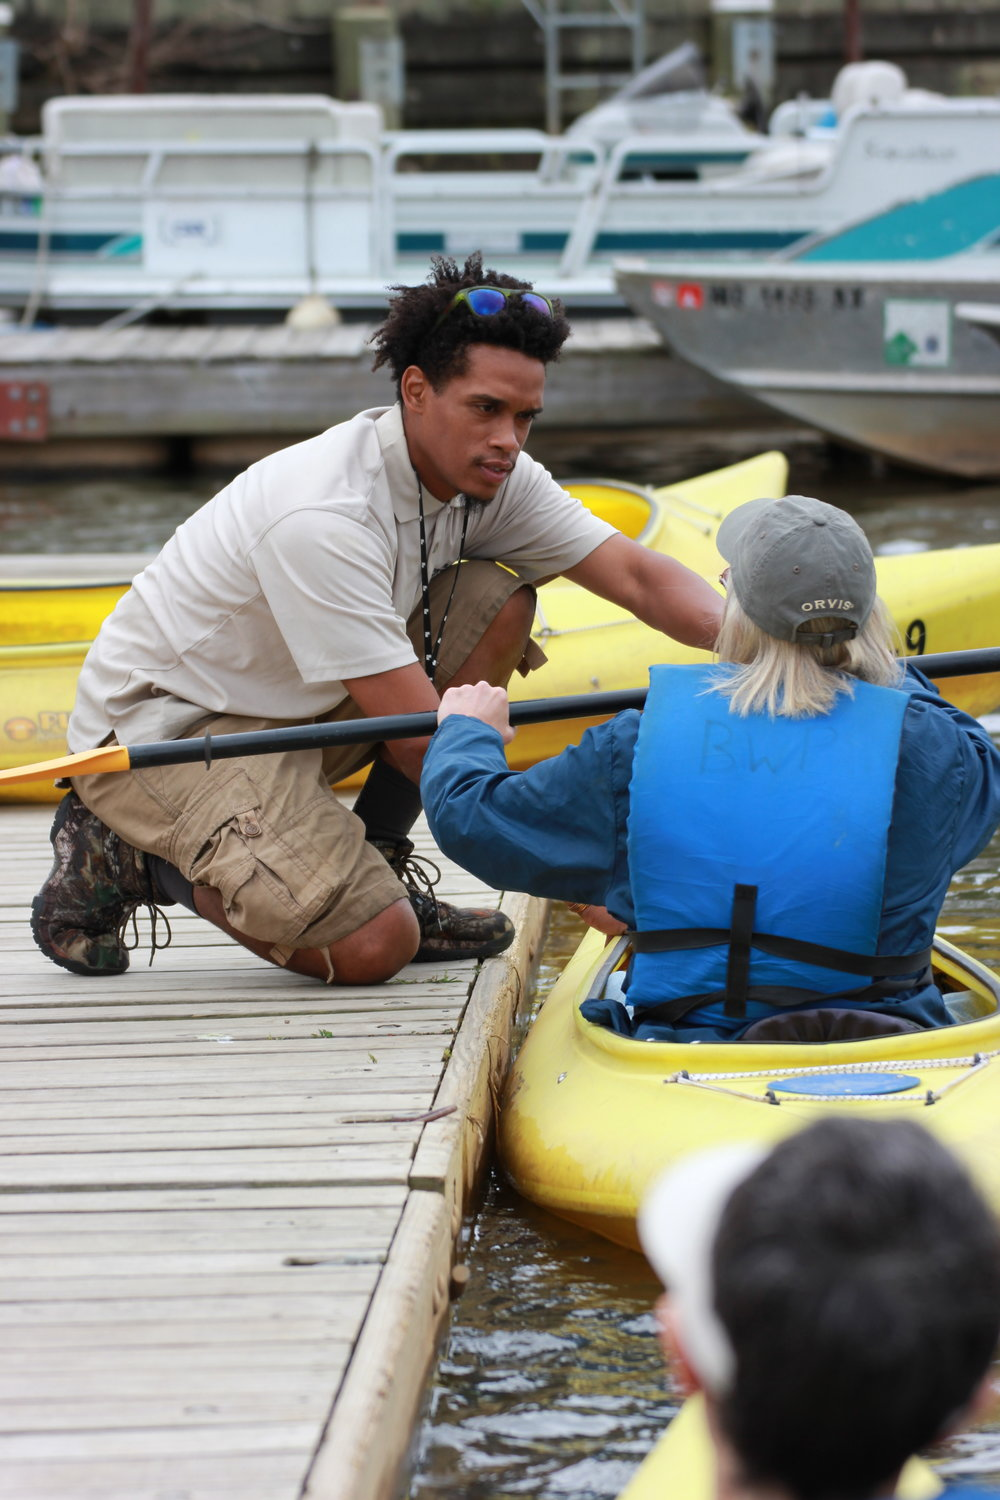 A kayak rental facility employee assists a customer at Bladensburg Waterfront Park. Photo: Anacostia Waterfront Trust.